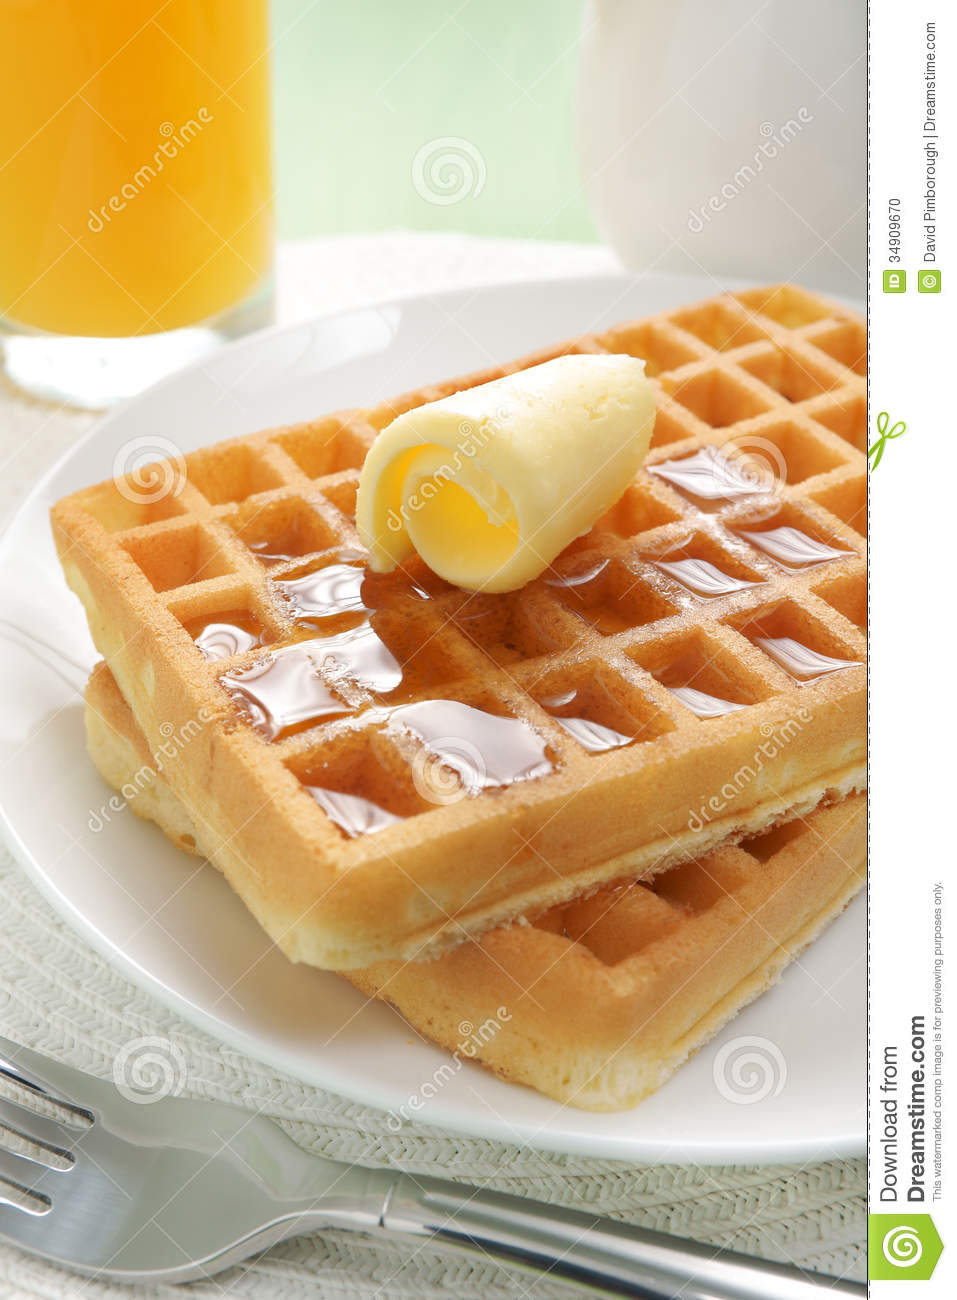 Waffles And Maple Syrup Stock Photo - Image: 34909670